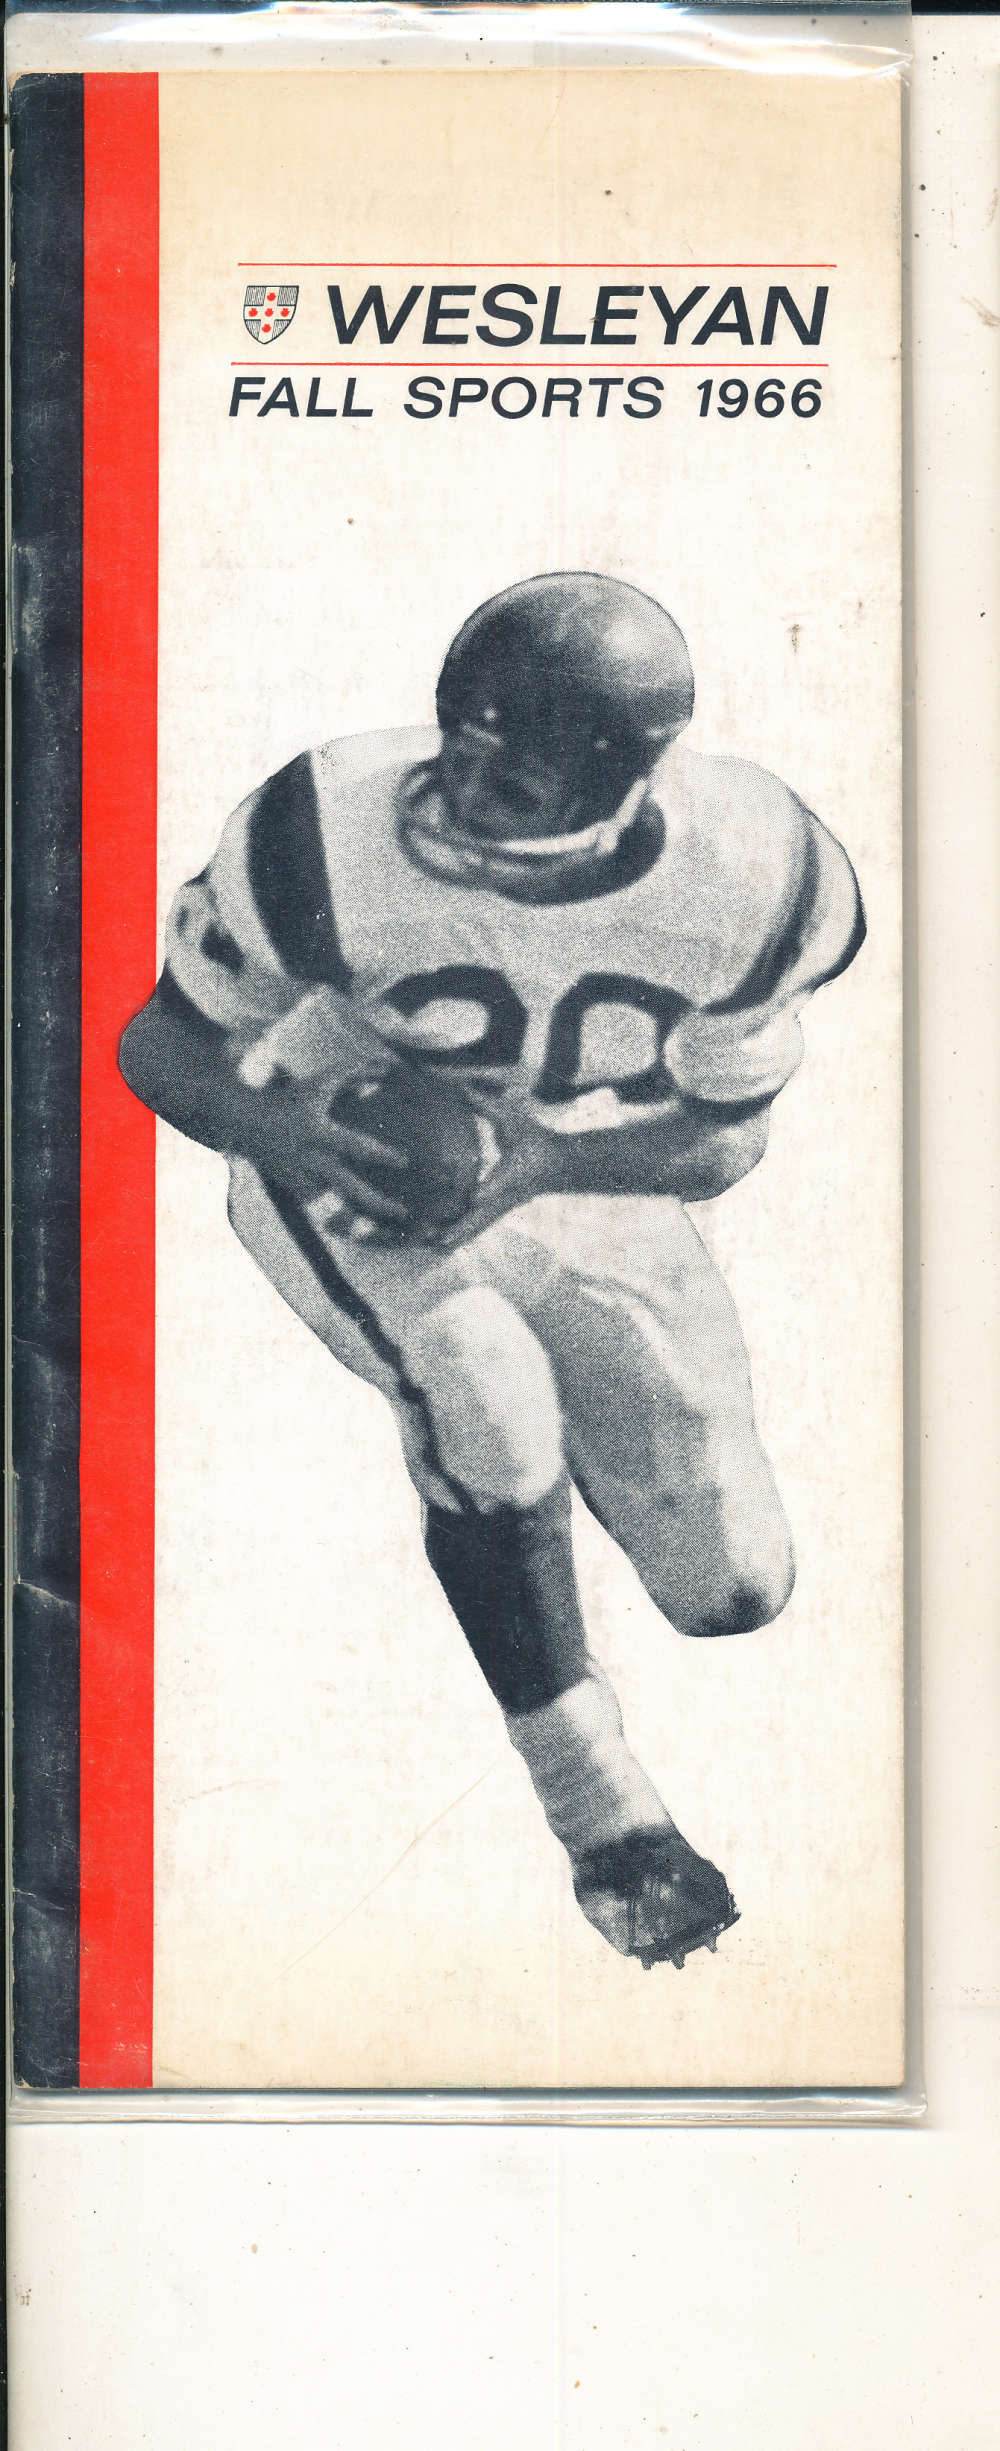 Wesleyan University fall sports 1966 Football Media Press Guide